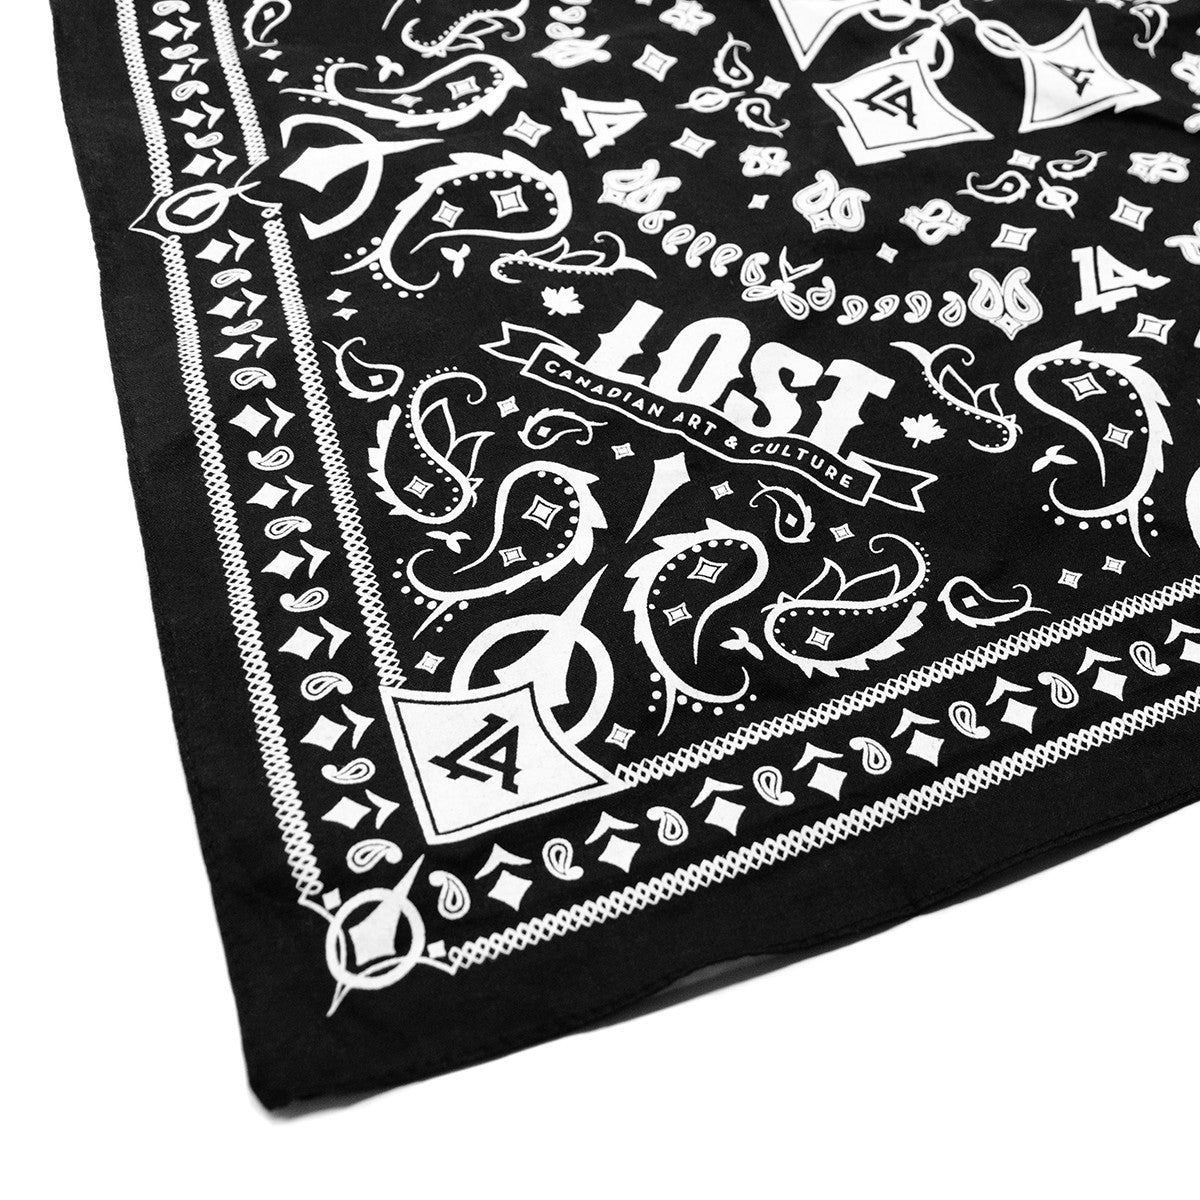 Lost Art Canada - custom black bandana close up